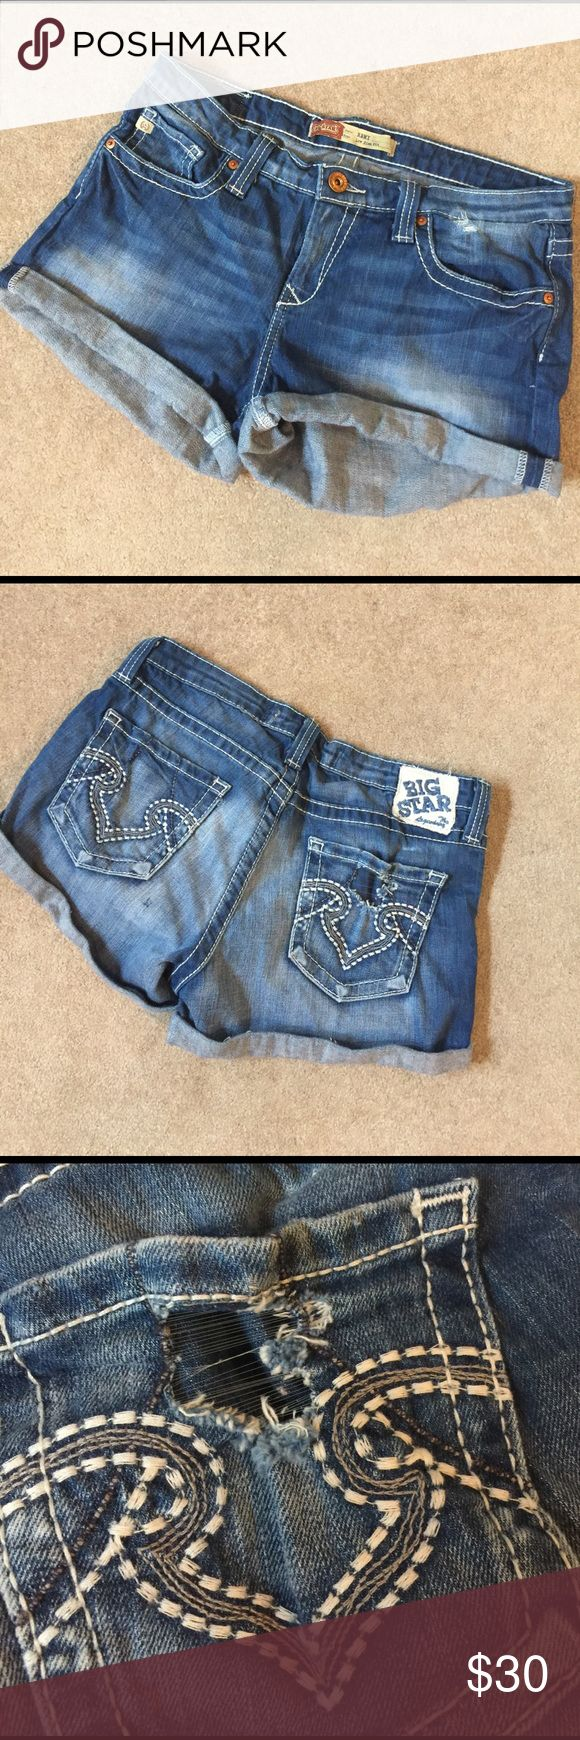 Big Star Remi Jean shorts Homemade jean shorts. Fried out pocket on the back shown in picture. Lowrise fit.  AO Big Star Shorts Jean Shorts